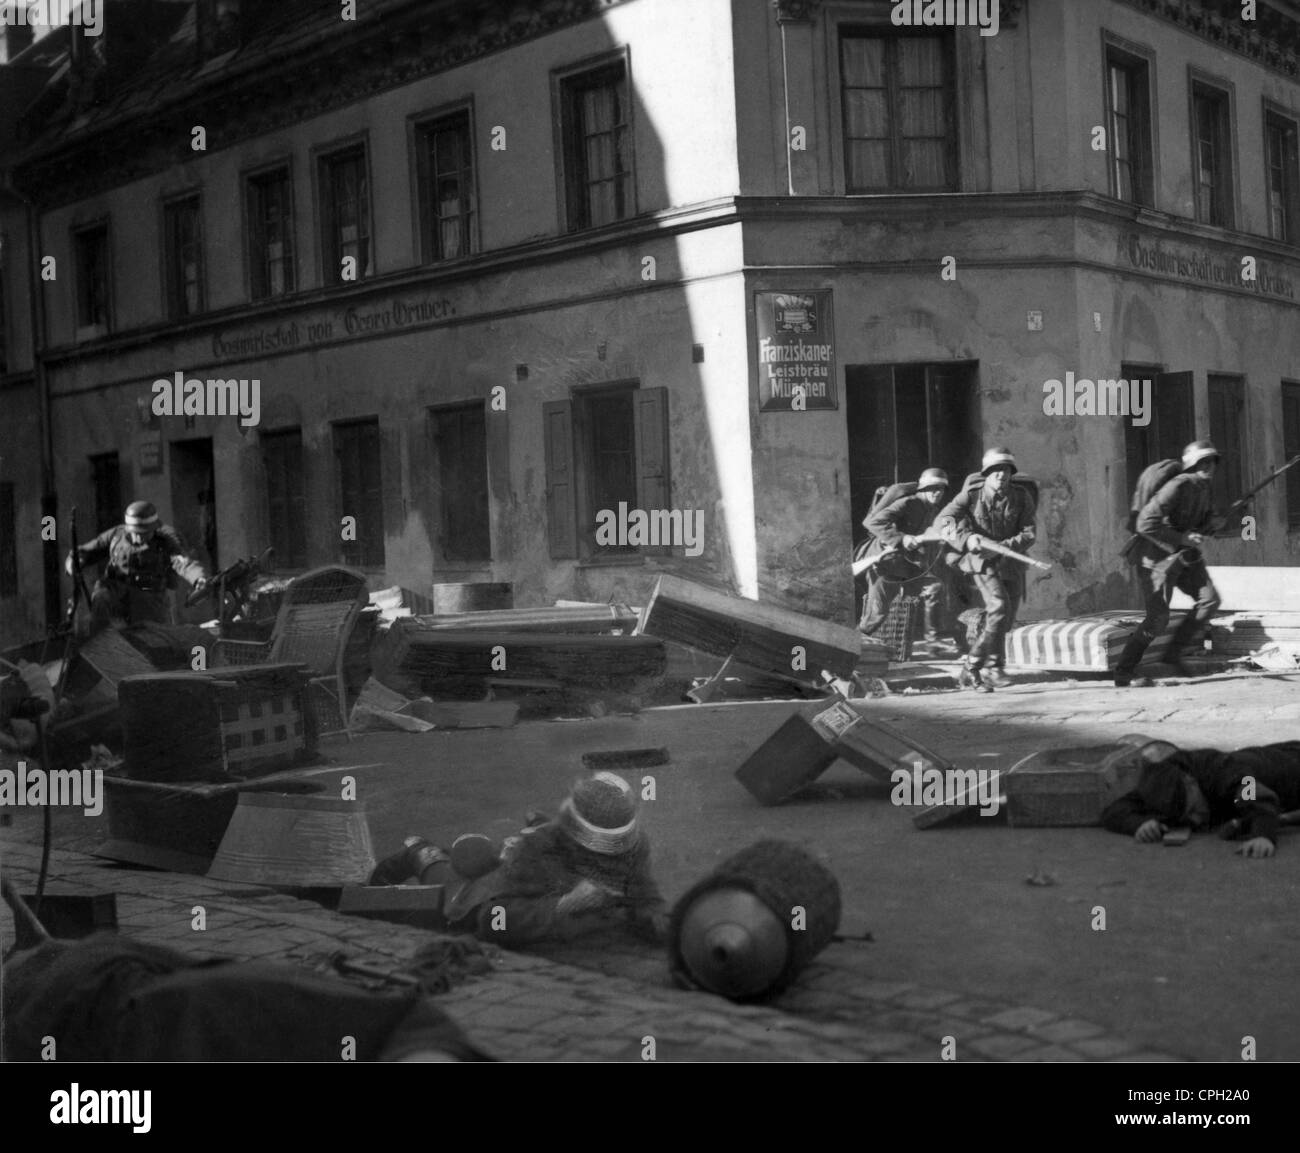 events, German Revolution 1918 - 1919, goverment troops storming a baricade, 1919, Freikorps, soldiers, Germany, - Stock Image